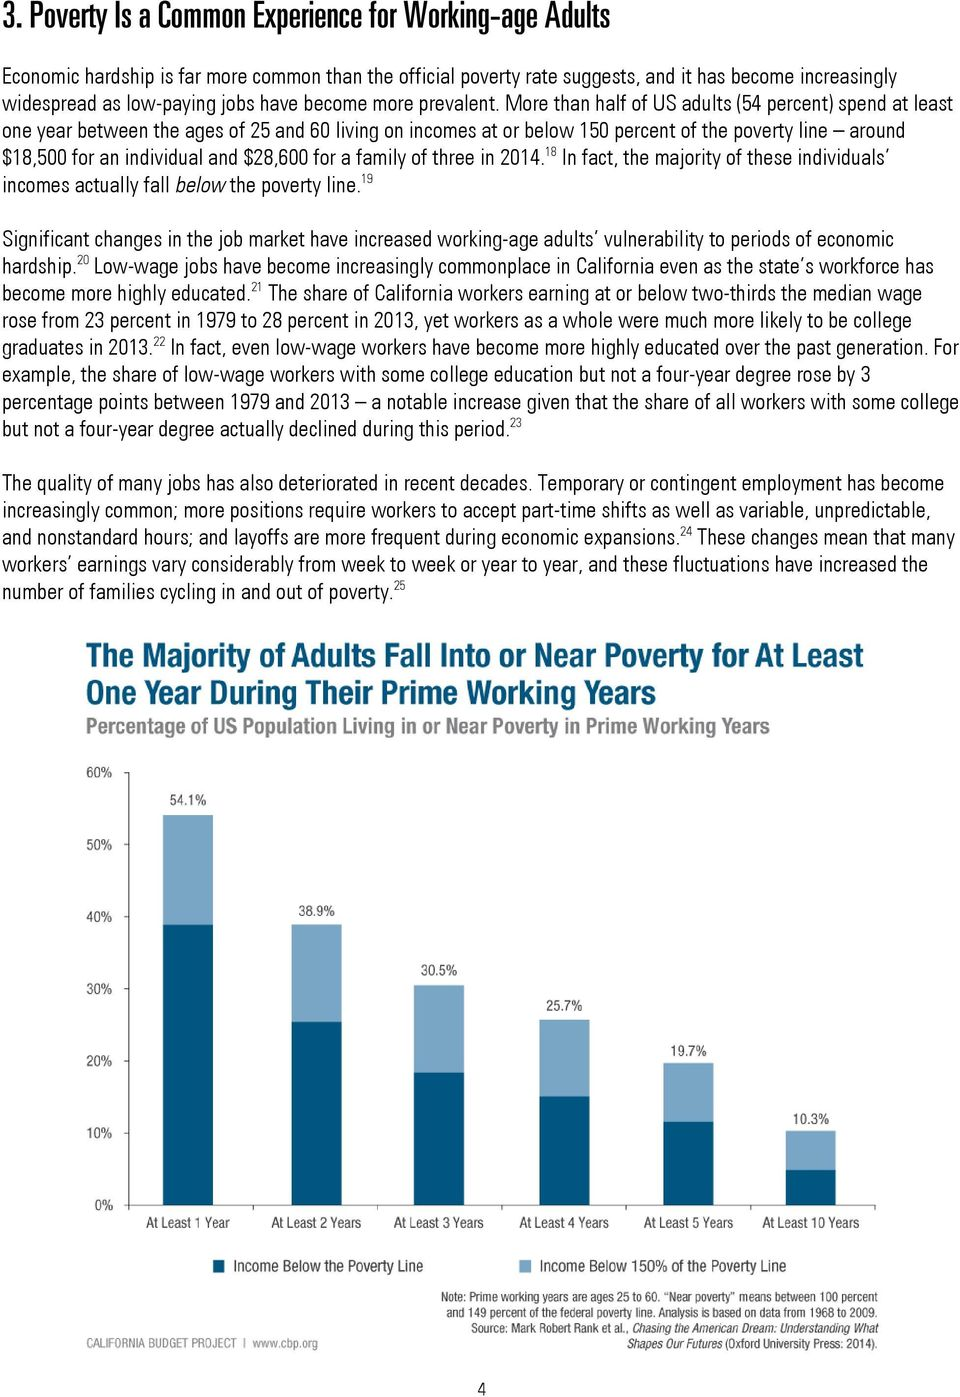 More than half of US adults (54 percent) spend at least one year between the ages of 25 and 60 living on incomes at or below 150 percent of the poverty line around $18,500 for an individual and